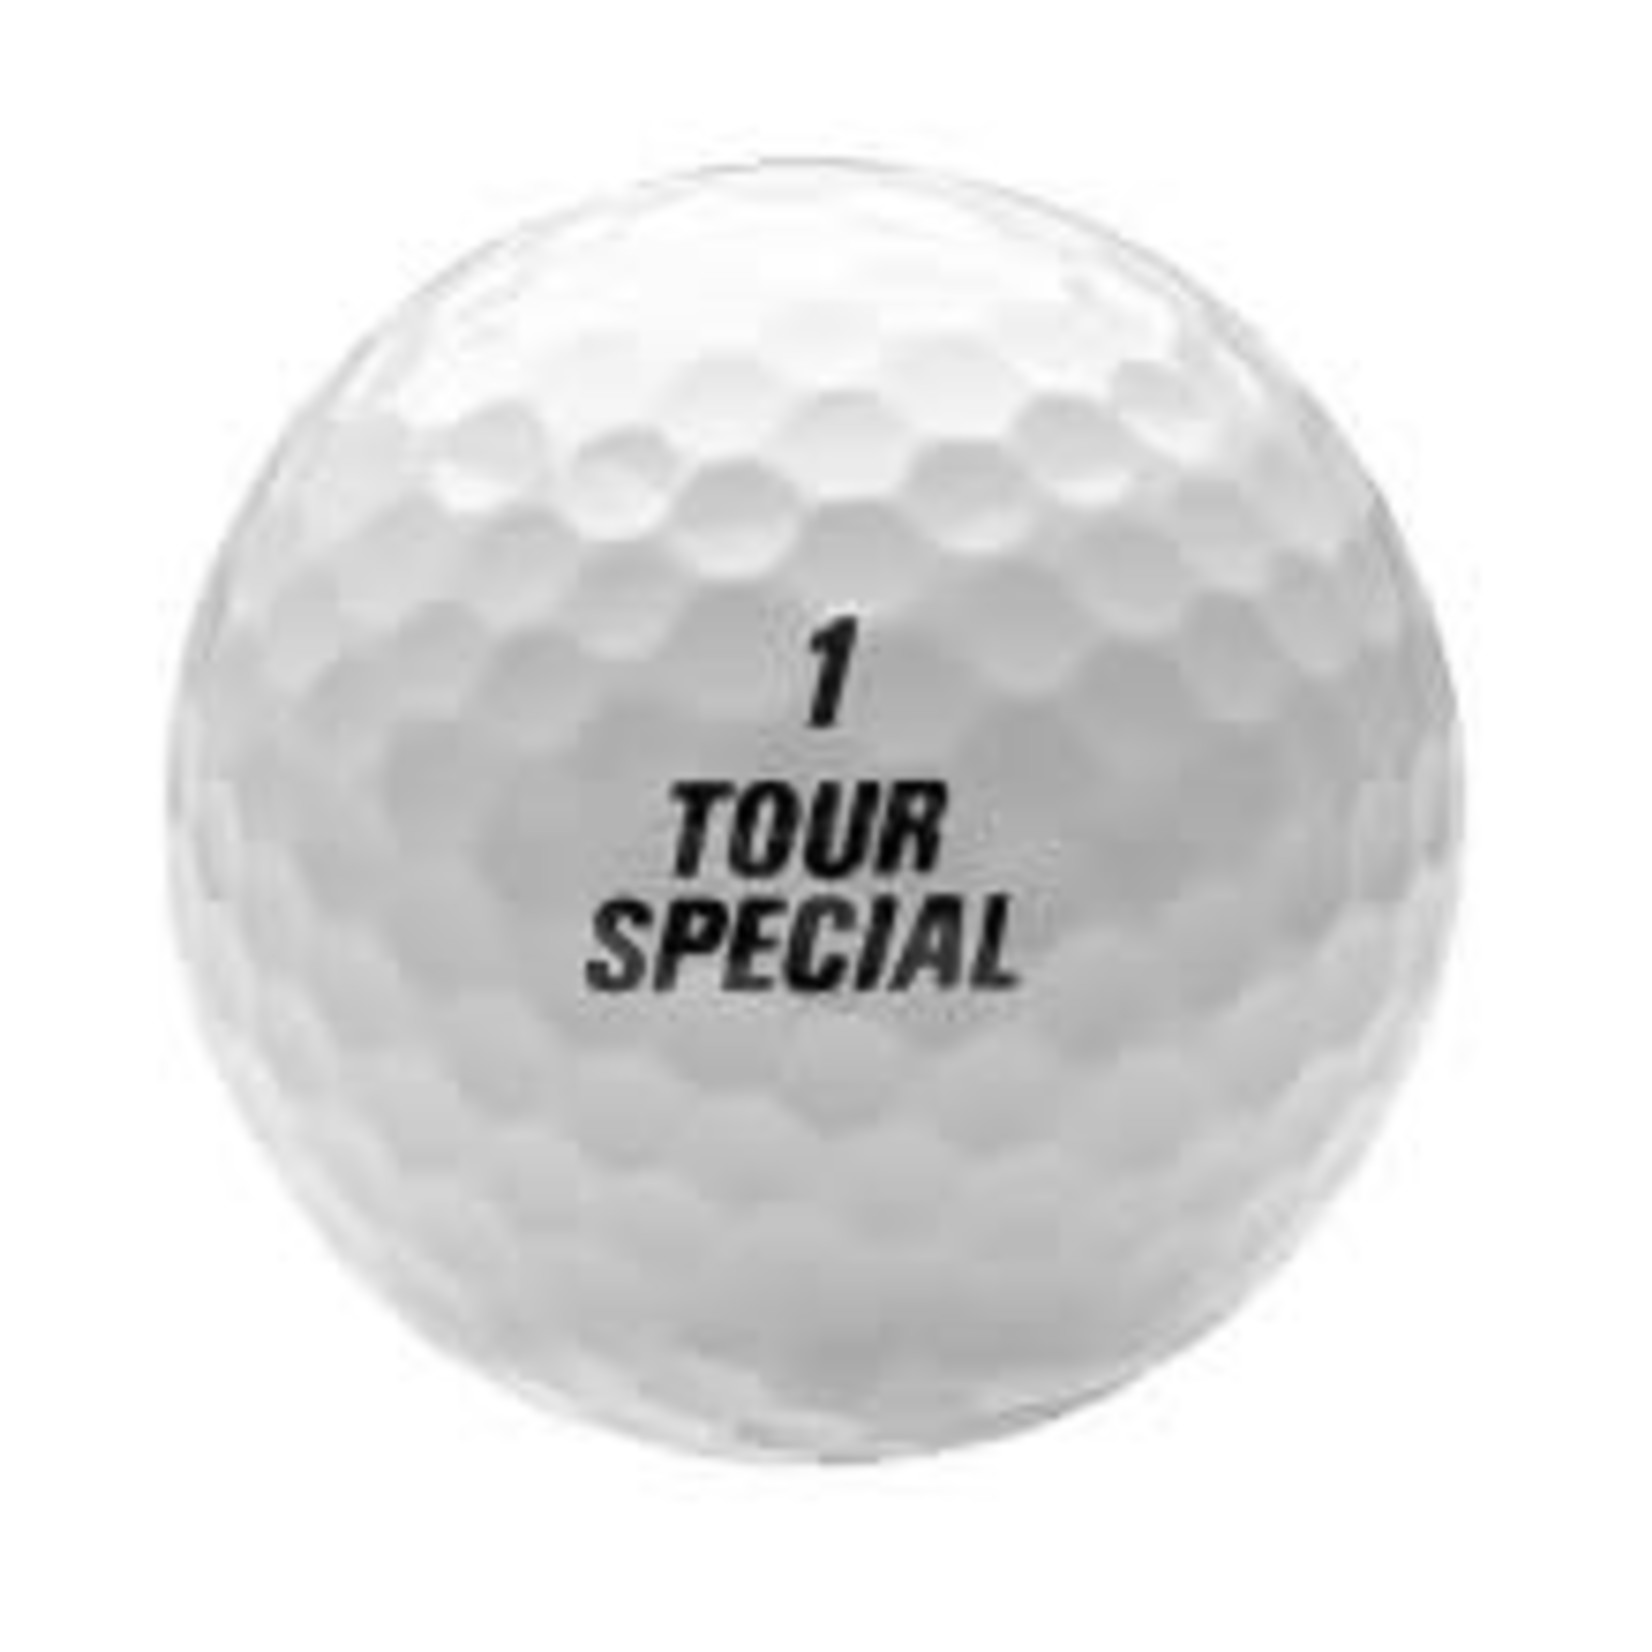 Srixon Tour Special (oud Crayestein logo) 15-pack